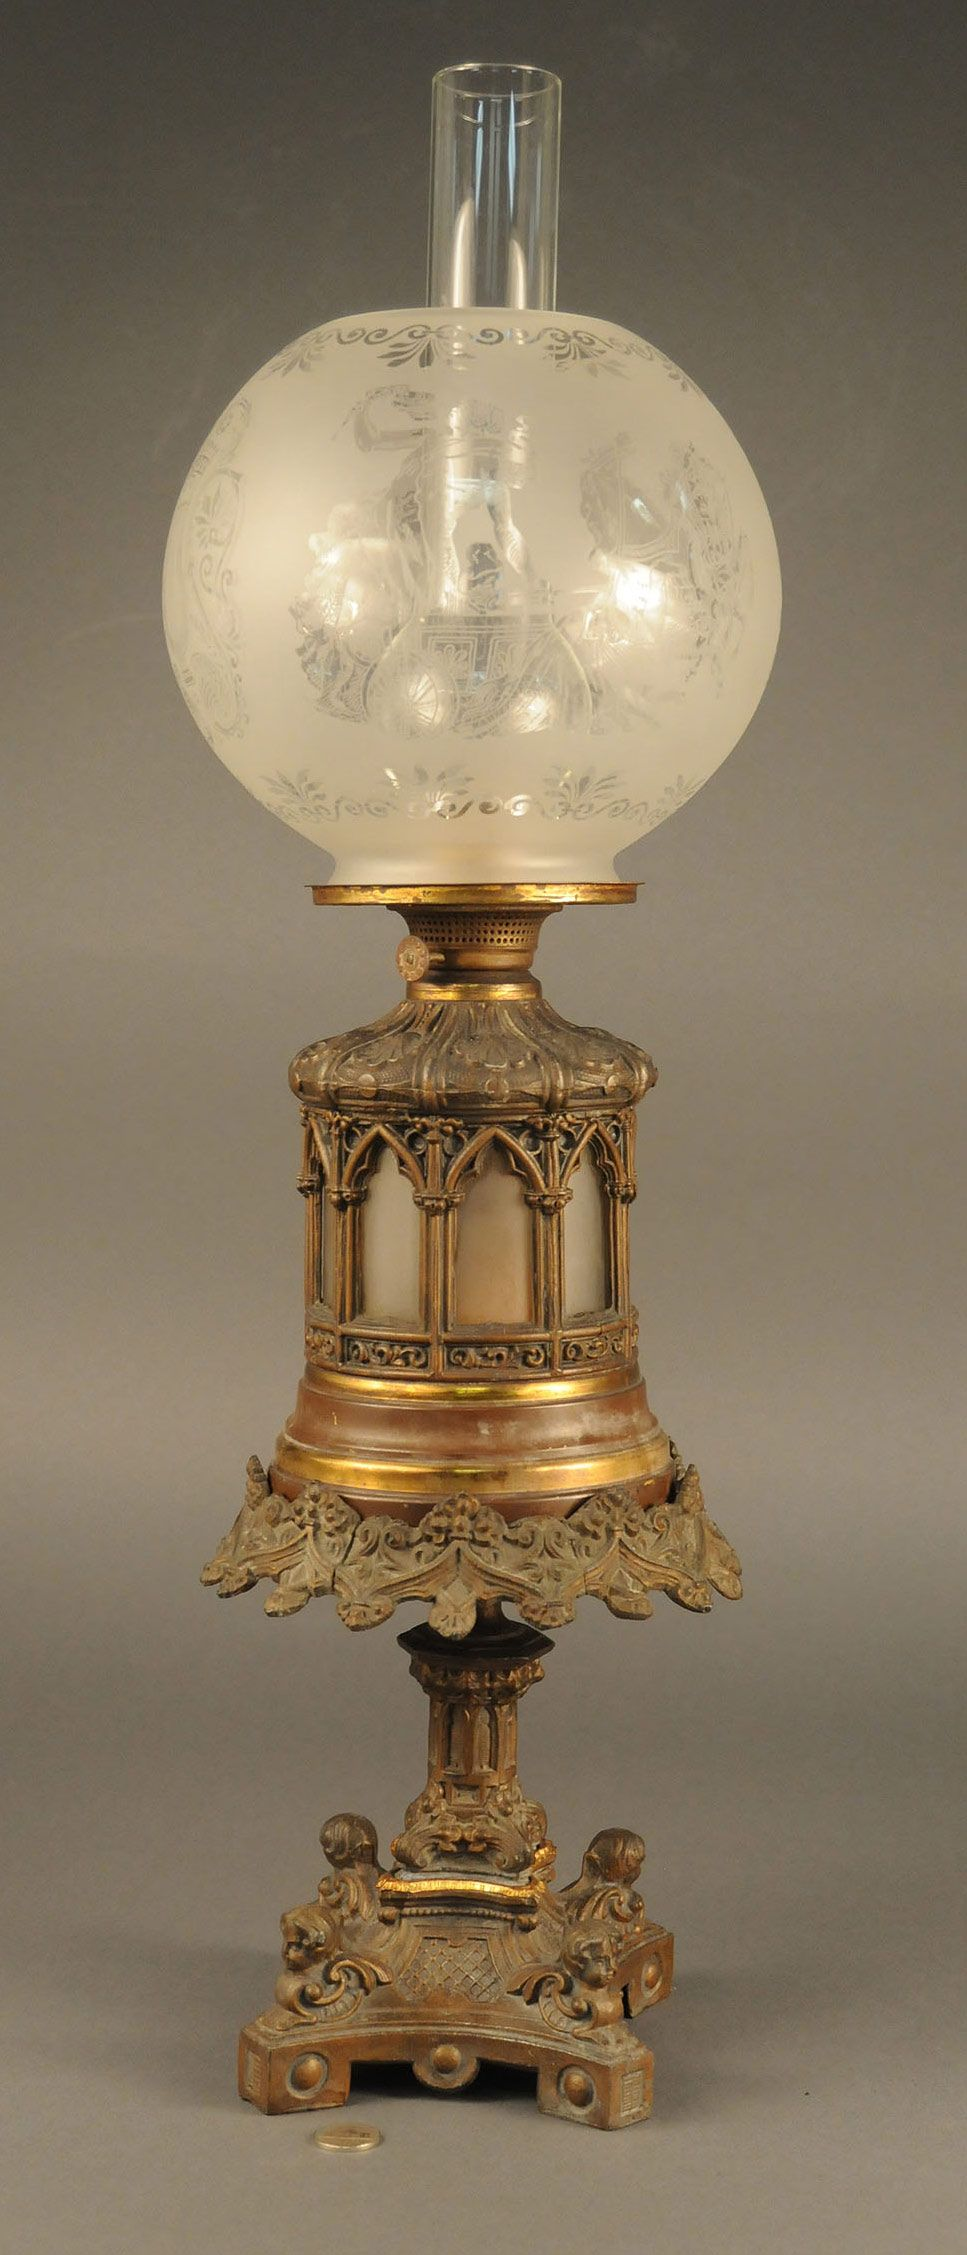 Rare-victorian Oil Lamp Etched Glass Shade With